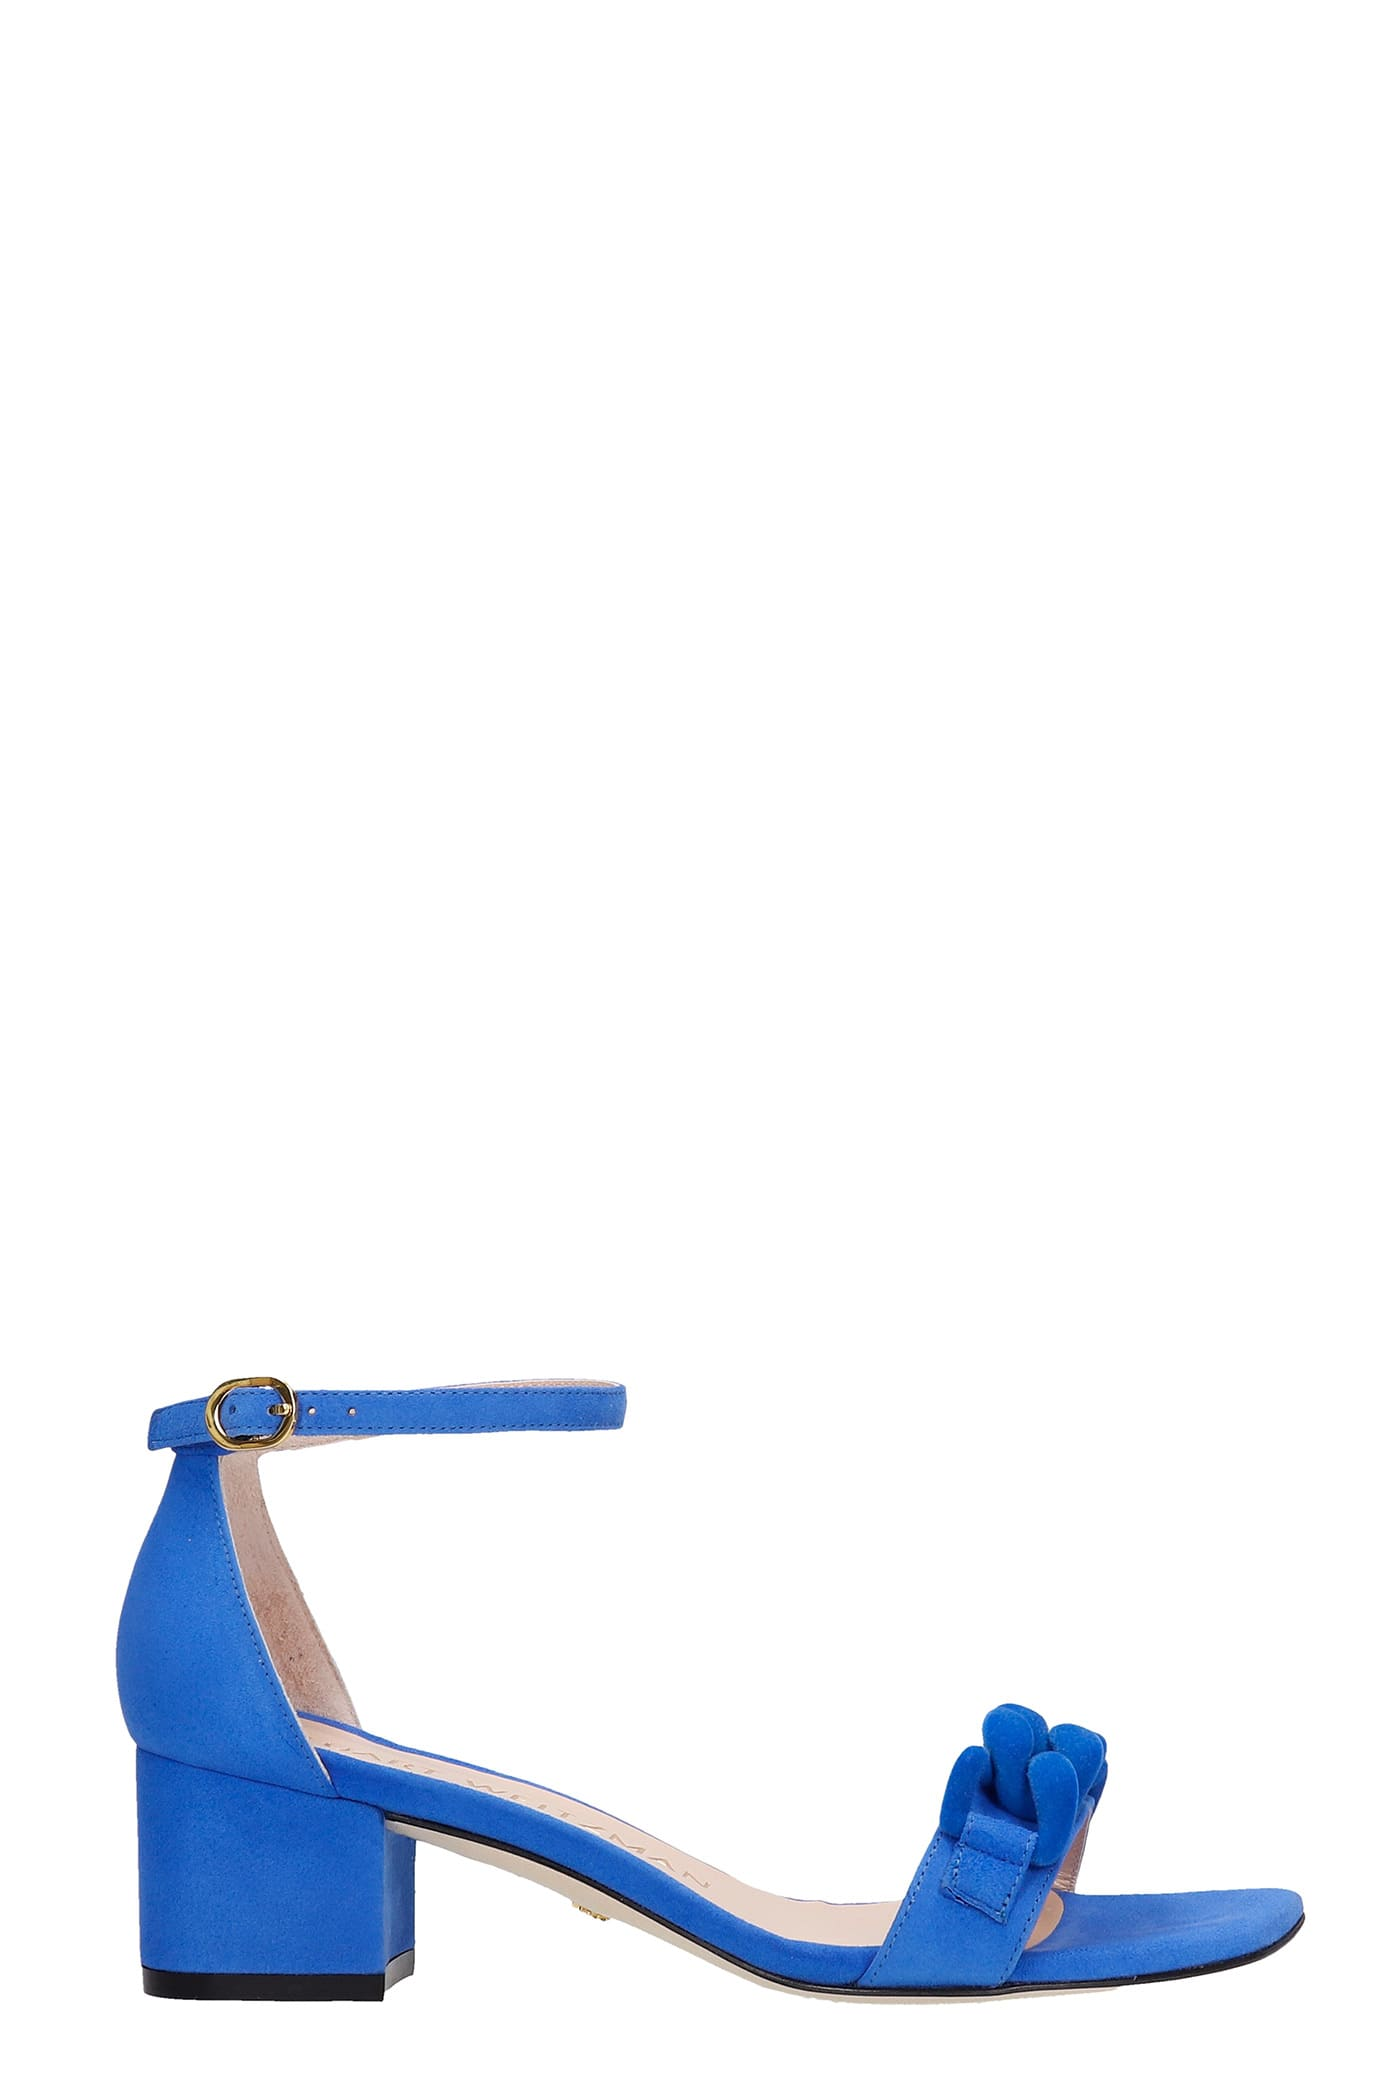 Buy Stuart Weitzman Amelina 50 Sandals In Blue Suede online, shop Stuart Weitzman shoes with free shipping